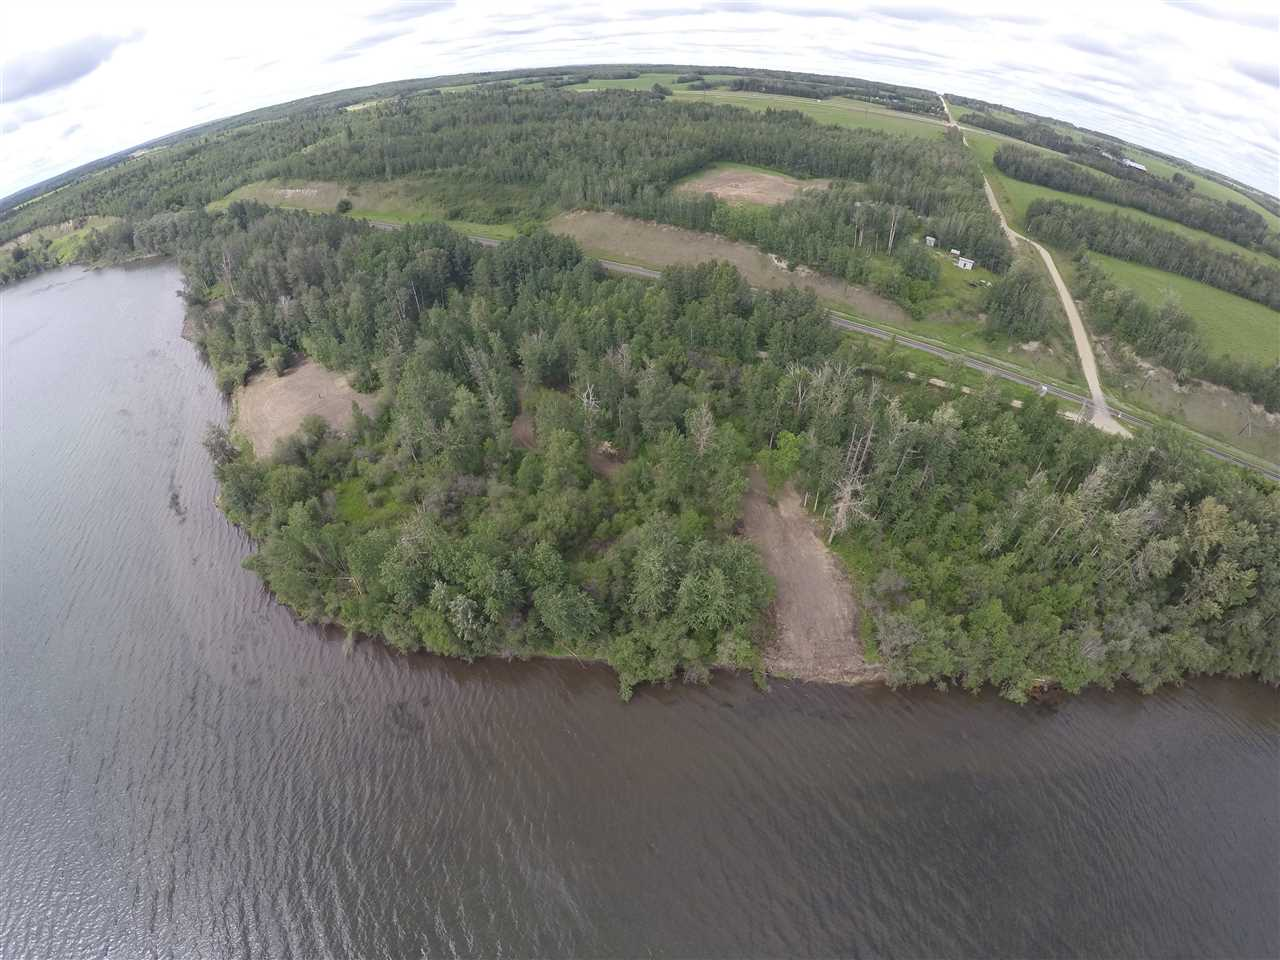 ONCE IN A LIFE TIME OPPORTUNITY to own PRIVATE WATERFRONT land on Lake Wabamun close to Seba Beach! Consisting of 1.19 acres, this RARE find boasts over 900 ft. of sandy beach with Riparian Rights to the water. South facing waterfront exposure with two building site areas. Plenty of trees for added privacy. Located a short 45-minute drive West of Edmonton, this property is the perfect site for your Lake retreat! Adjacent 5.39 acres is also for sale, please visit MLS # E4100586